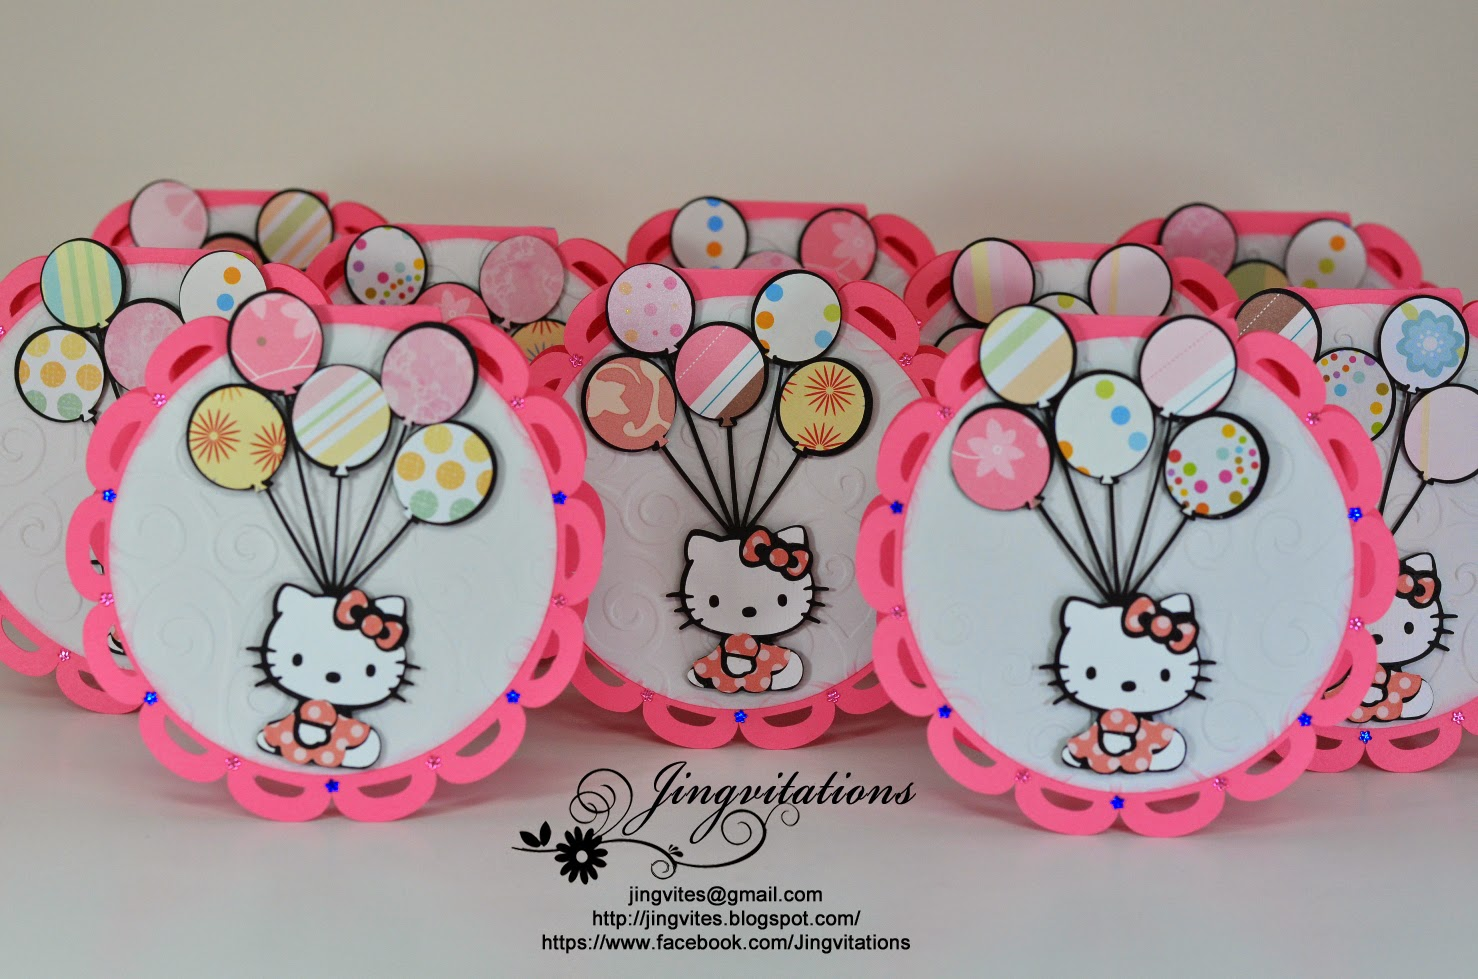 Jingvitations Hello Kitty Birthday Party Invitations Banner - Birthday invitation in germany